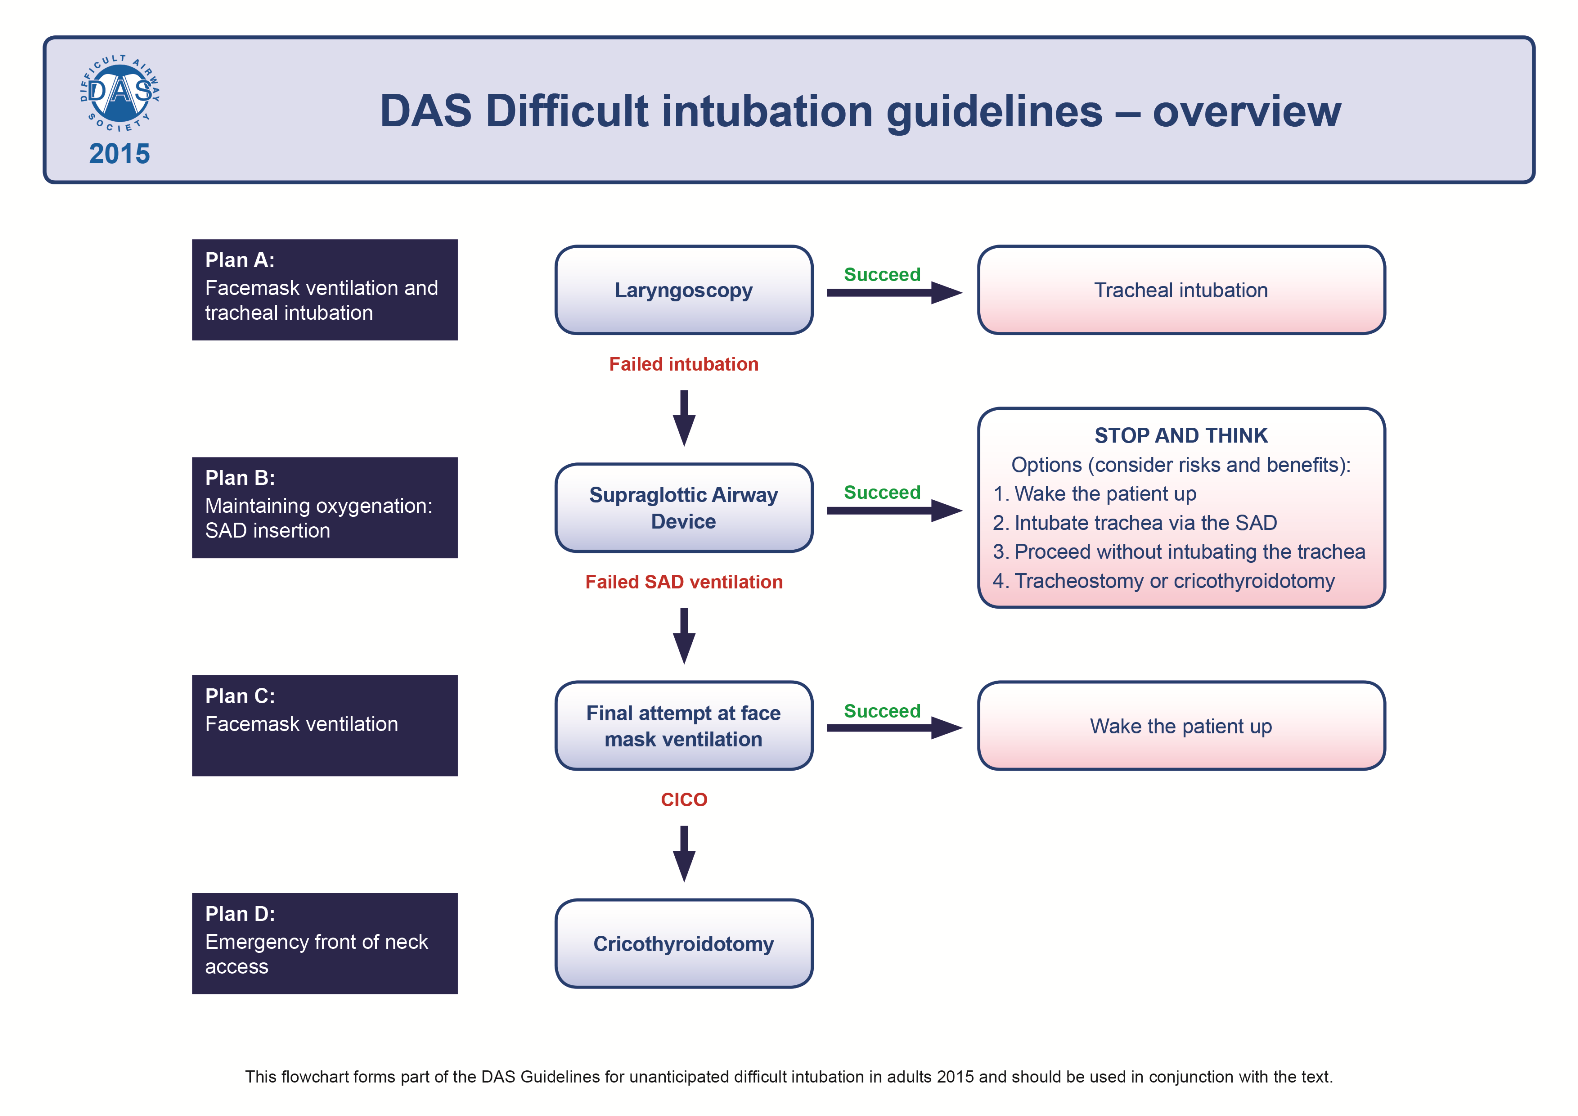 DAS guidelines for management of difficult intubation in adults - Overview